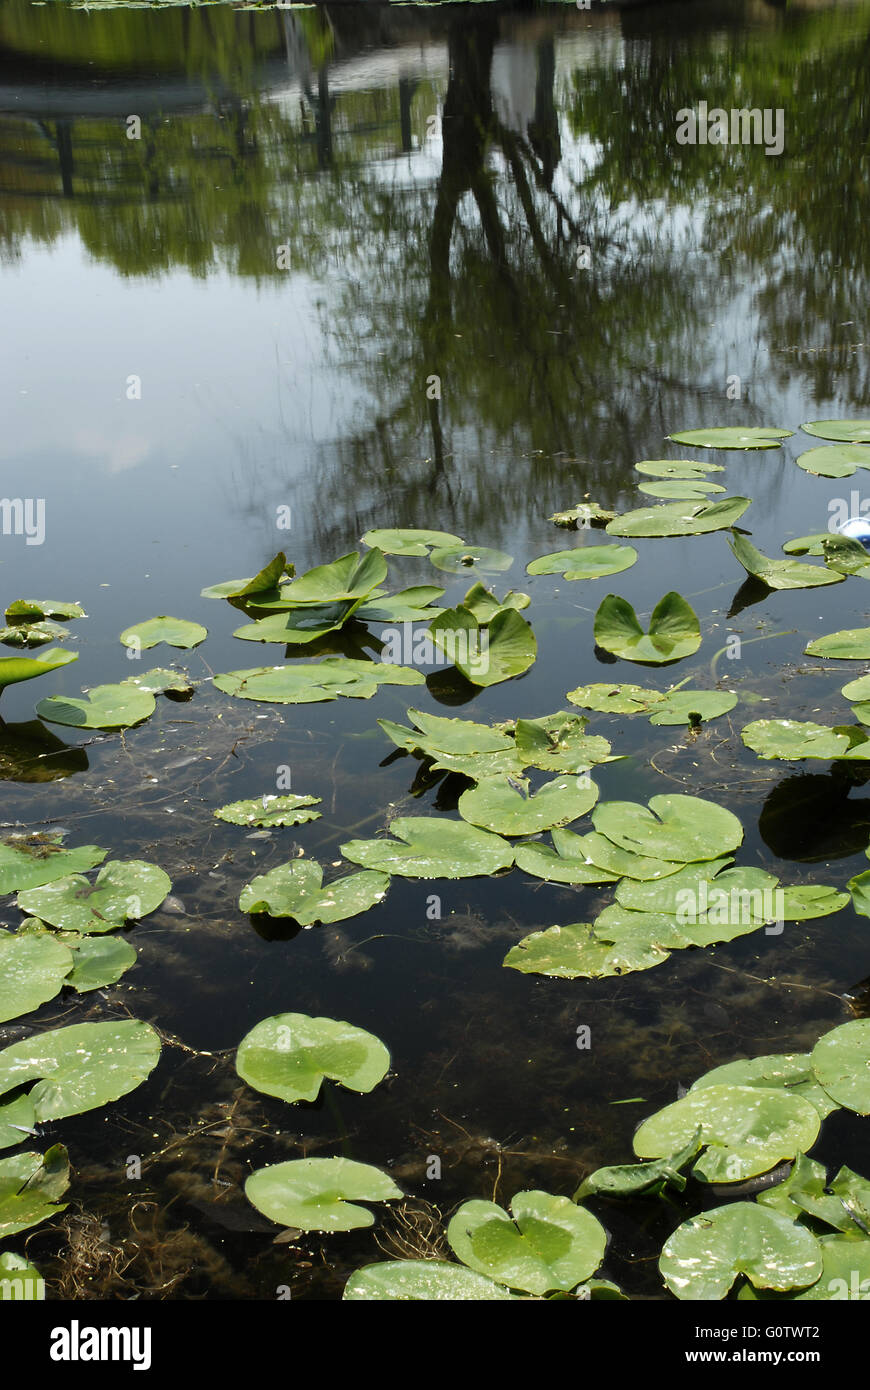 Lily pads on a lake with a reflection of a tree and bridge. Taken in Cox Arboretum in Dayton, Ohio. - Stock Image